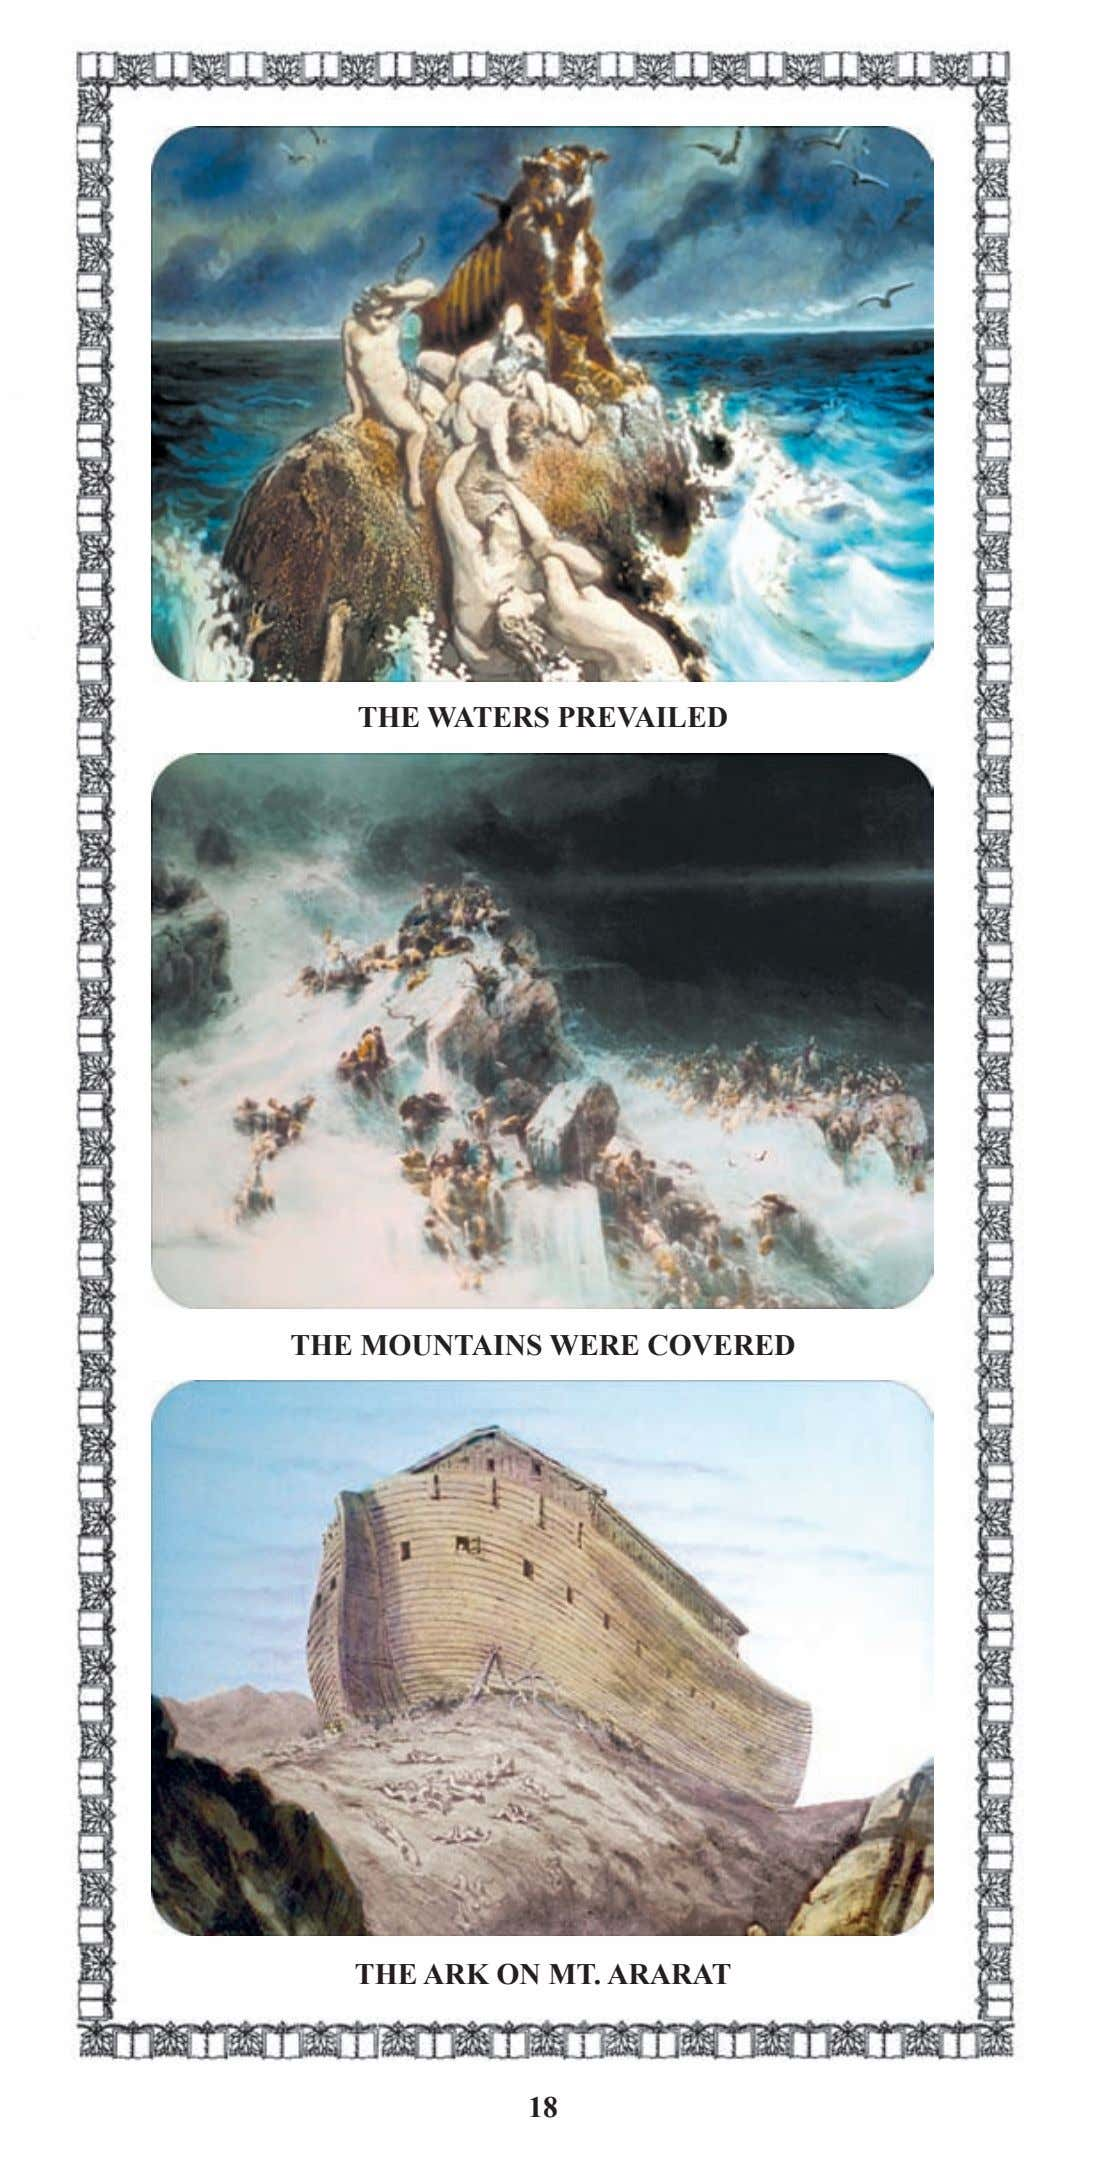 THE WATERS PREVAILED THE MOUNTAINS WERE COVERED THE ARK ON MT. ARARAT 18